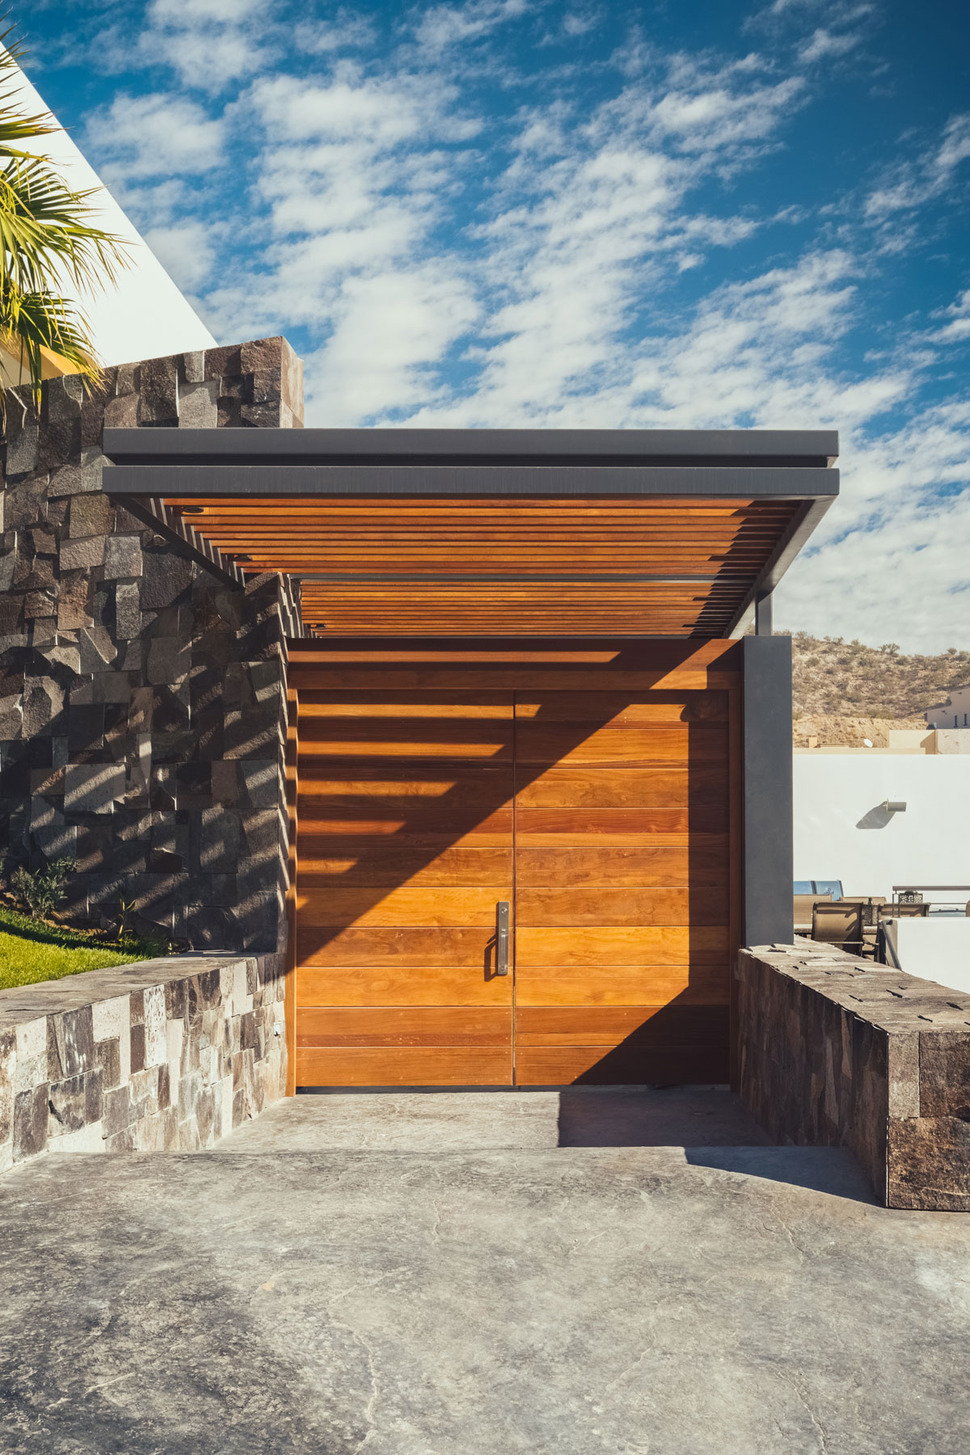 3 Level Slope House Has Deck Over Pool House